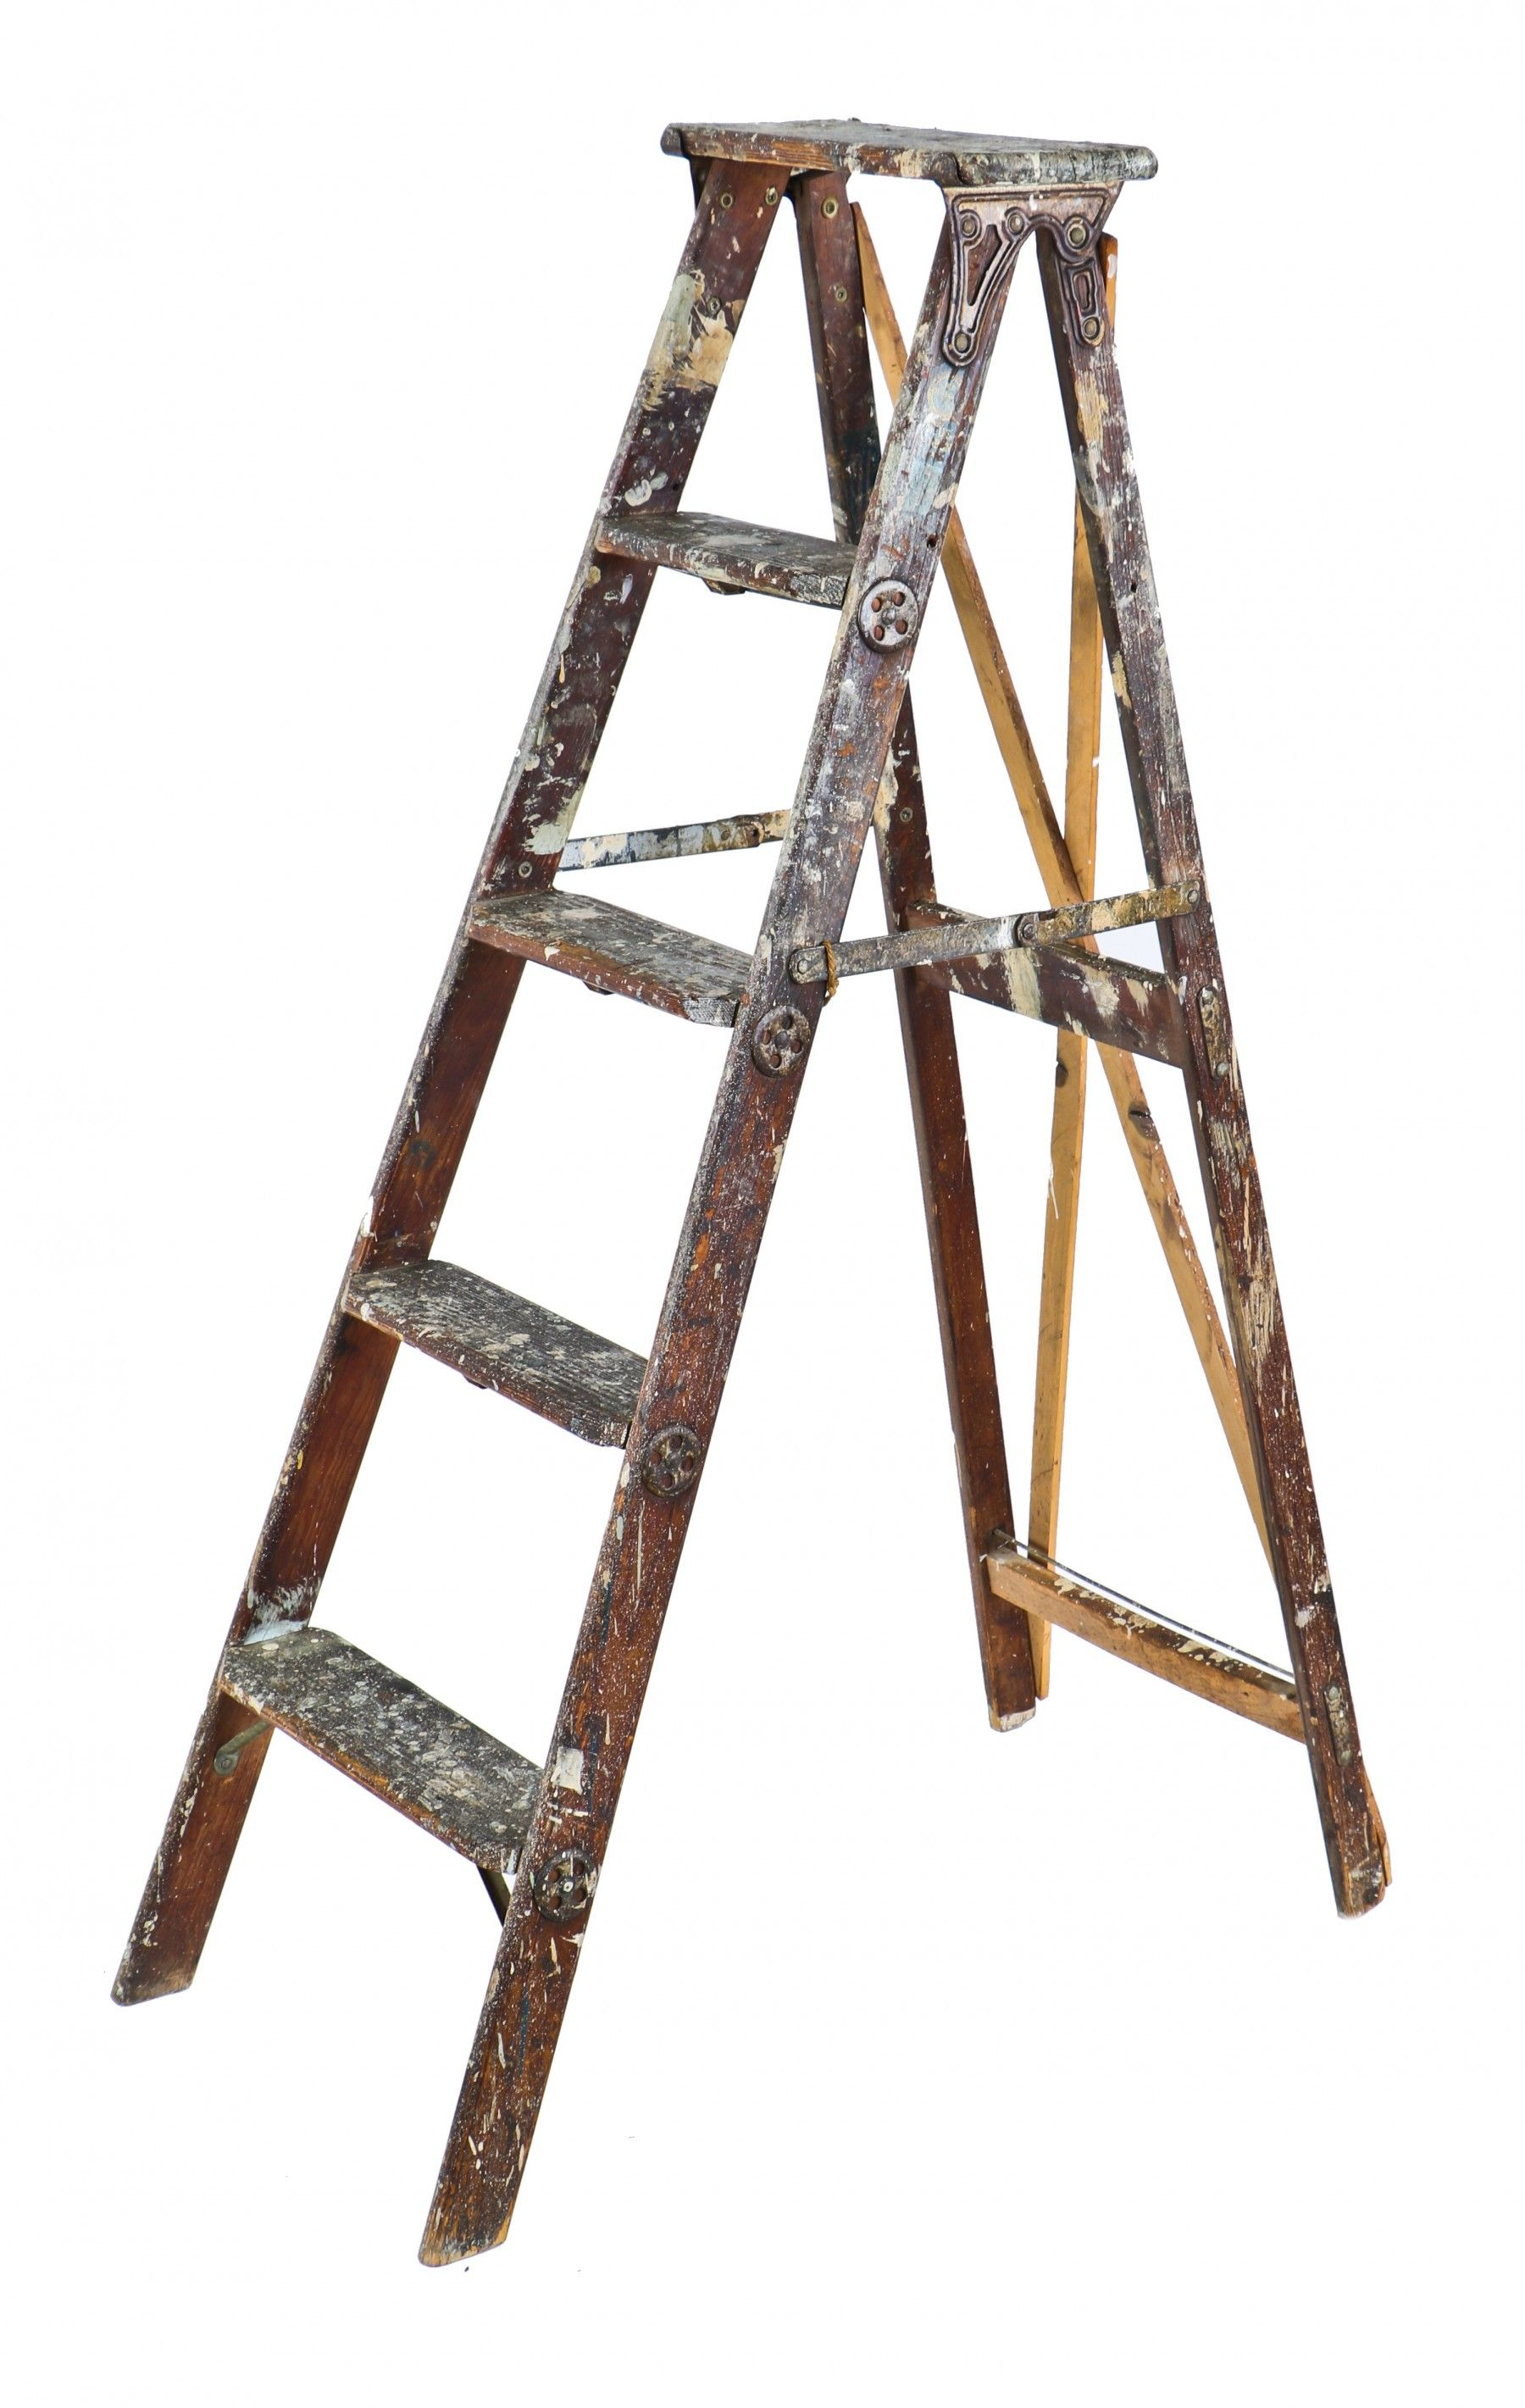 C 1896 Original And Structurally Sturdy Old Reliable Folding A Frame Pine Wood Painters Ladder With Reinforced Rungs Containing Steel Tie Rods Thr